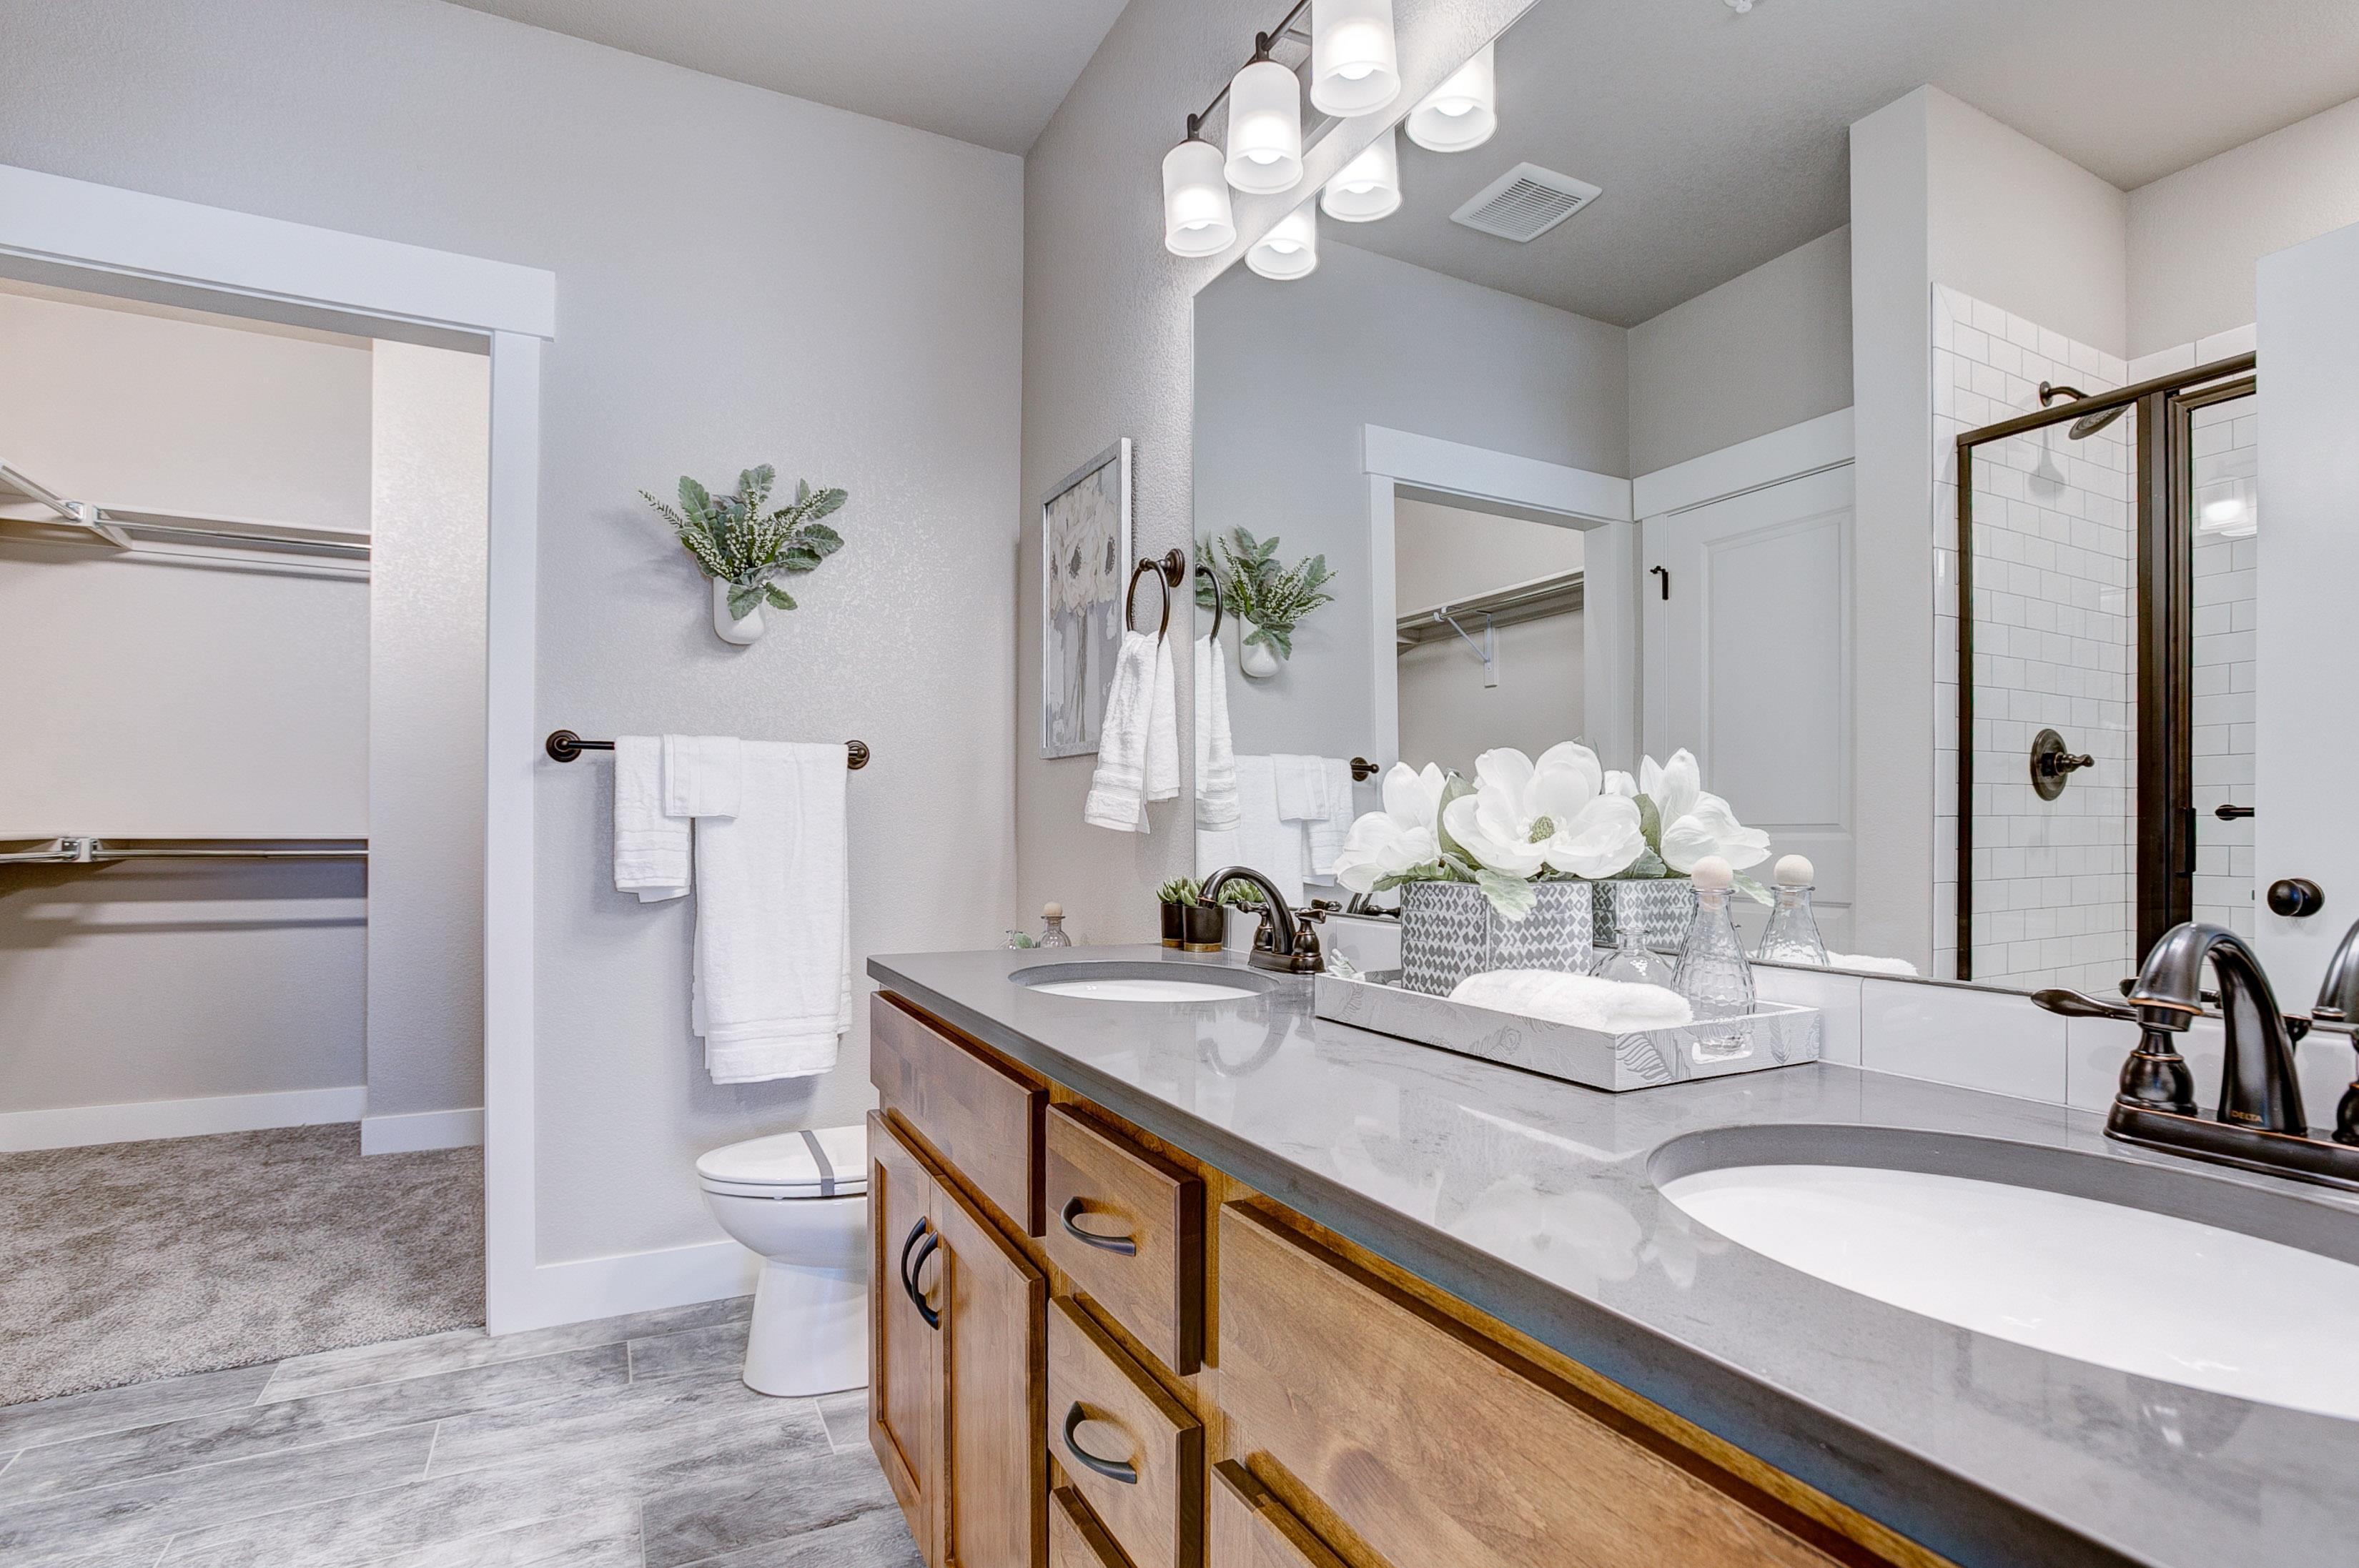 Bathroom featured in the Cambridge By Landmark Homes  in Fort Collins-Loveland, CO